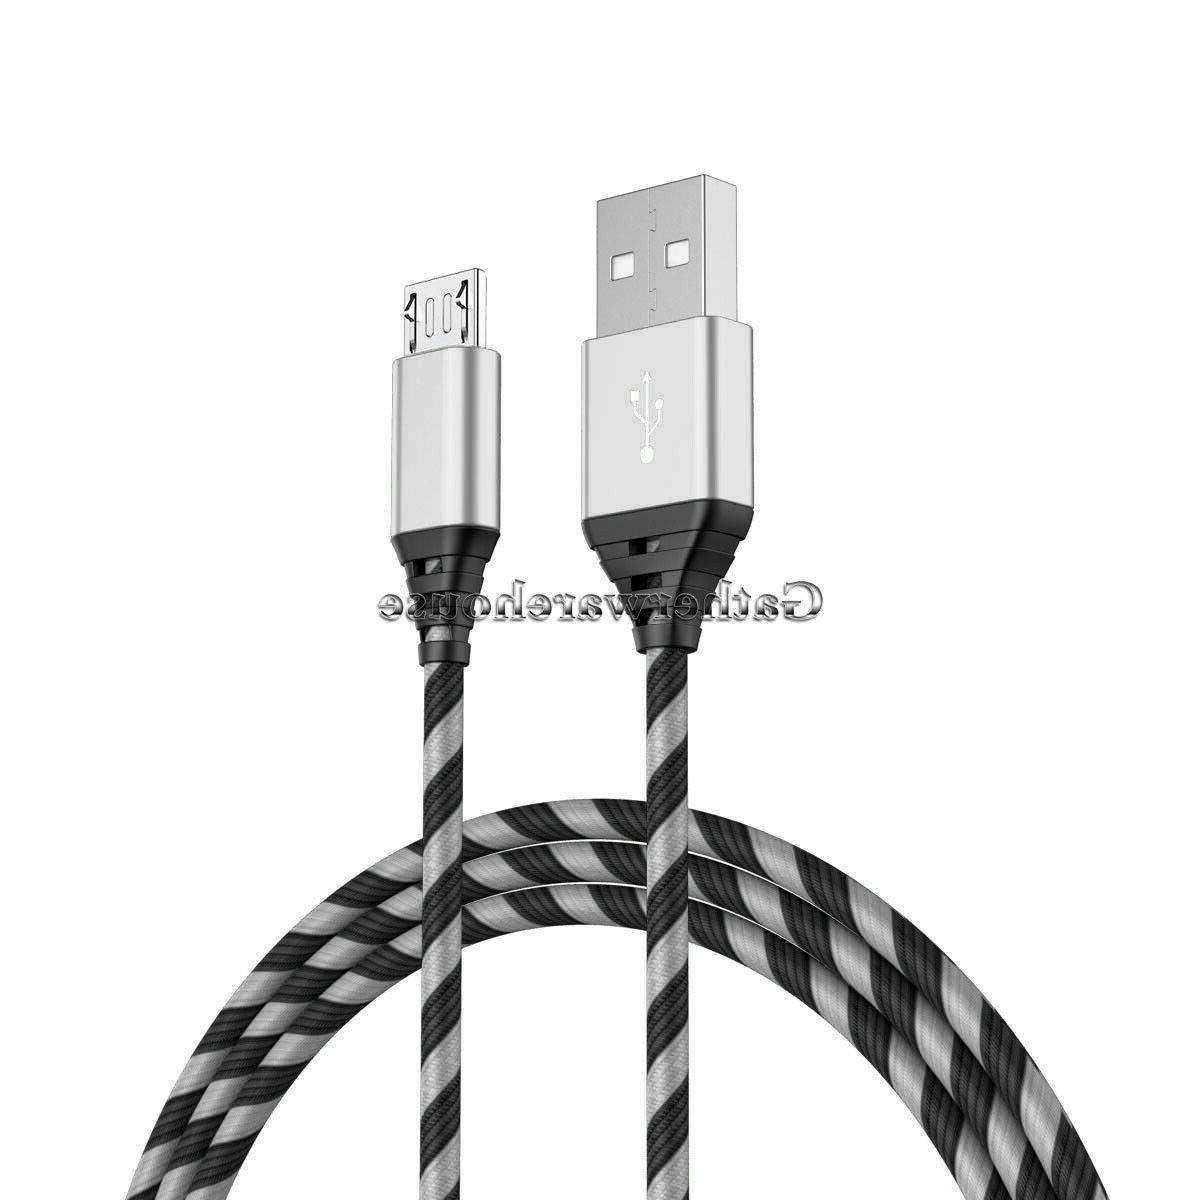 2-PACK For Samsung J3 S7 Edge Note 5 4 Charger USB Cable Cord